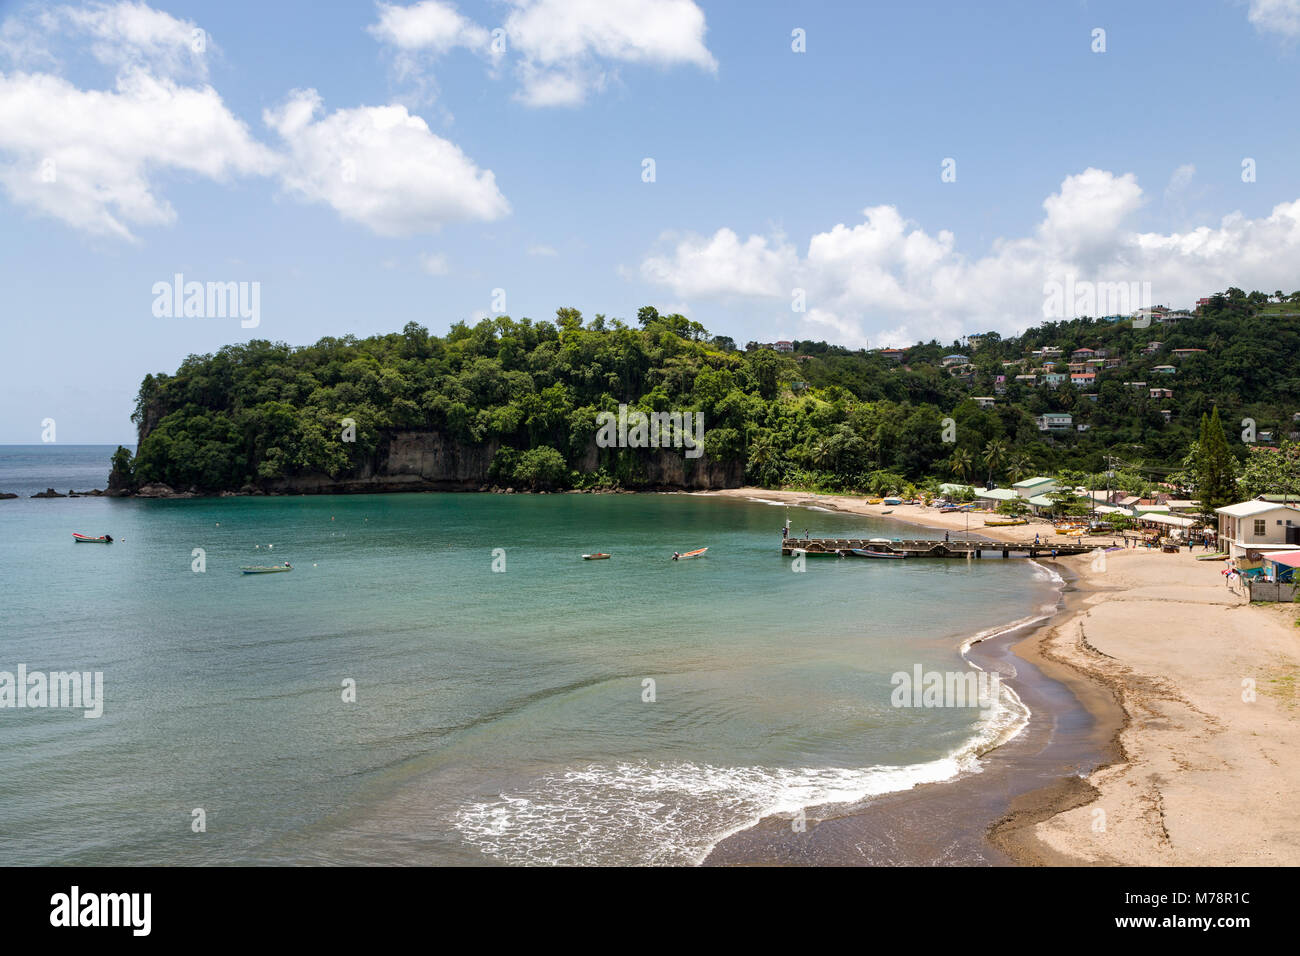 The beach at Anse la Raye, St. Lucia, Windward Islands, West Indies Caribbean, Central America - Stock Image